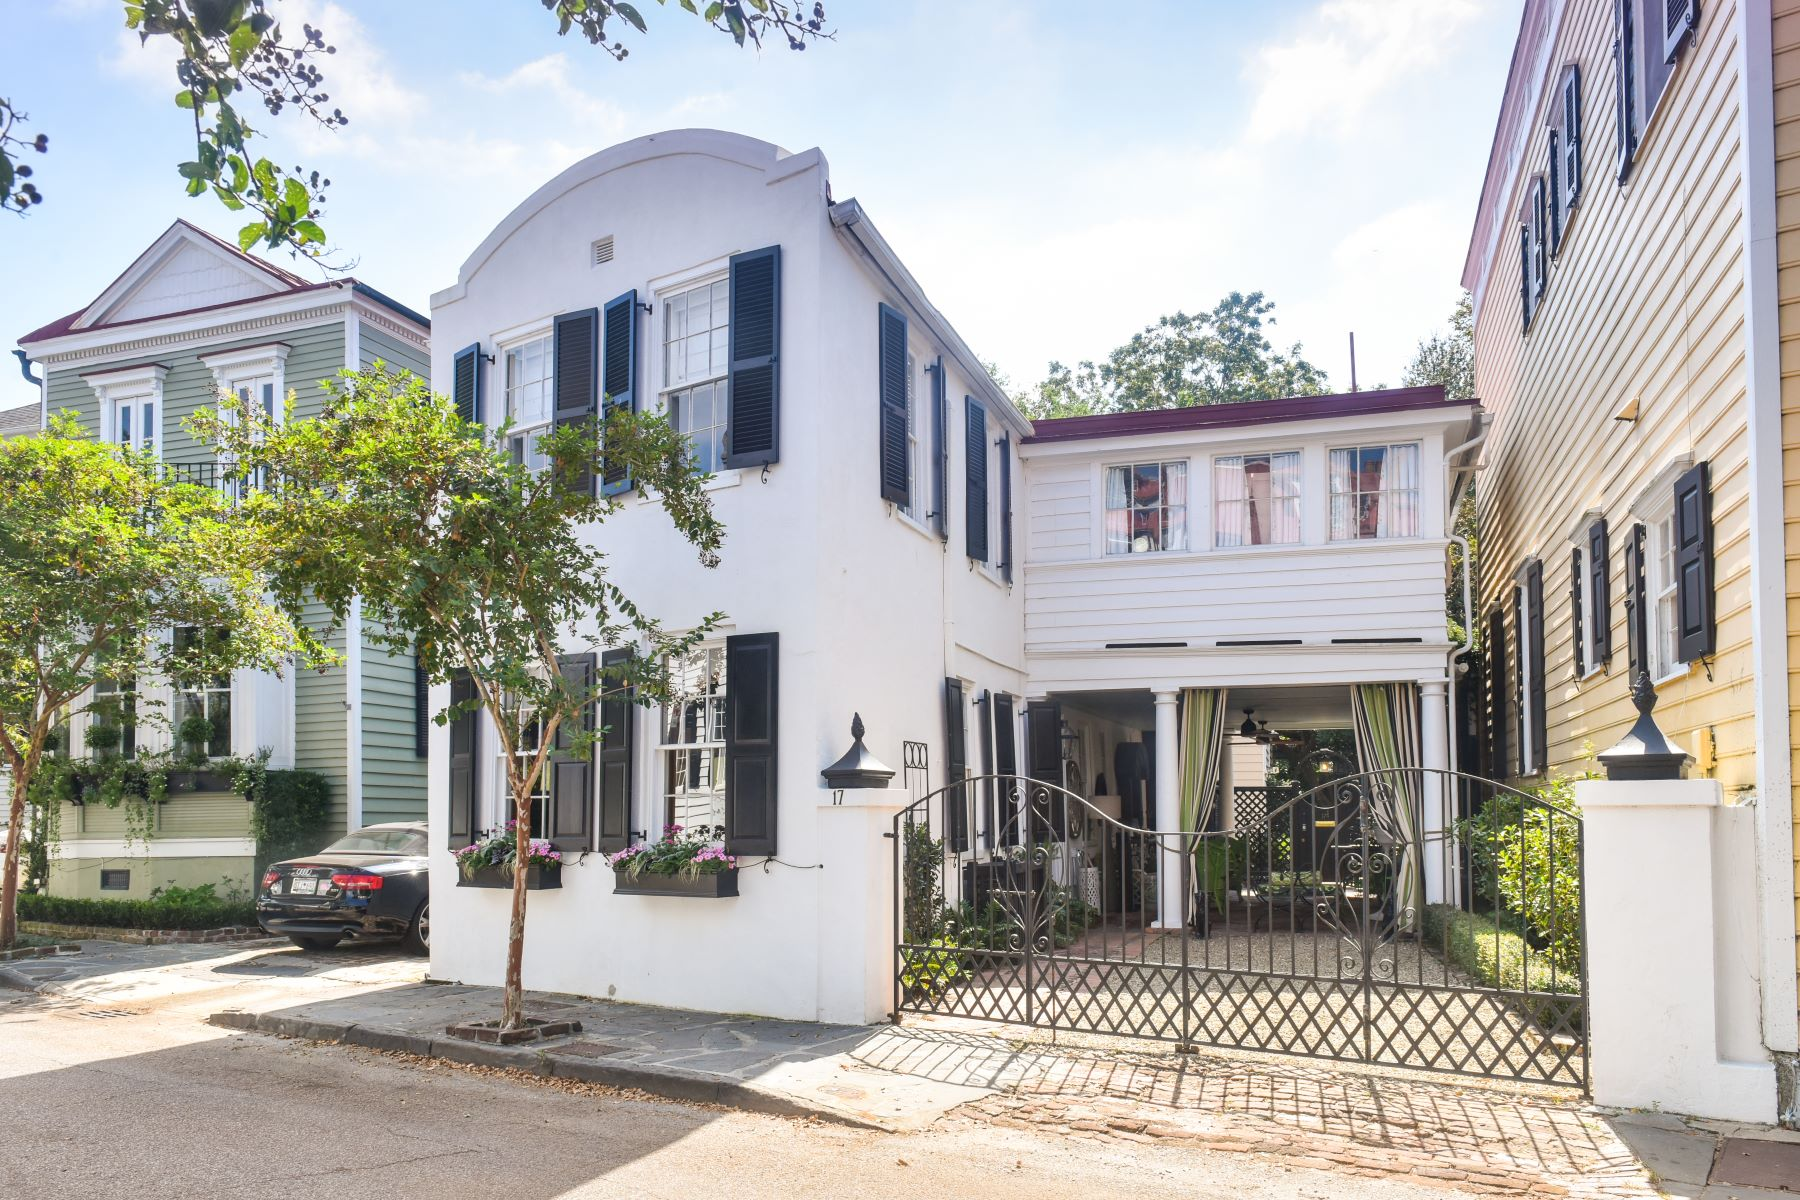 Single Family Homes for Active at 17 Water Street Charleston, South Carolina 29401 United States